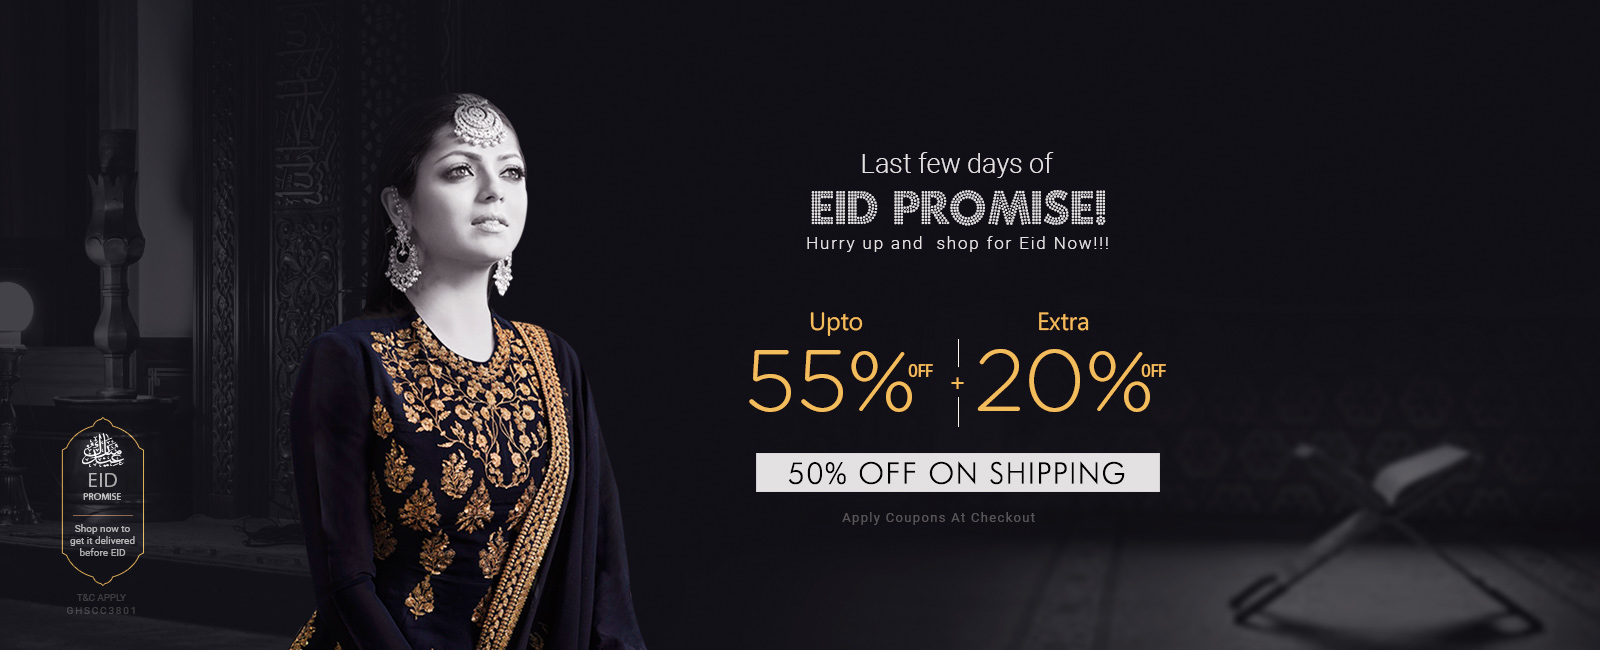 Upto 55% off + + Extra 20% off + 50% off on Shipping